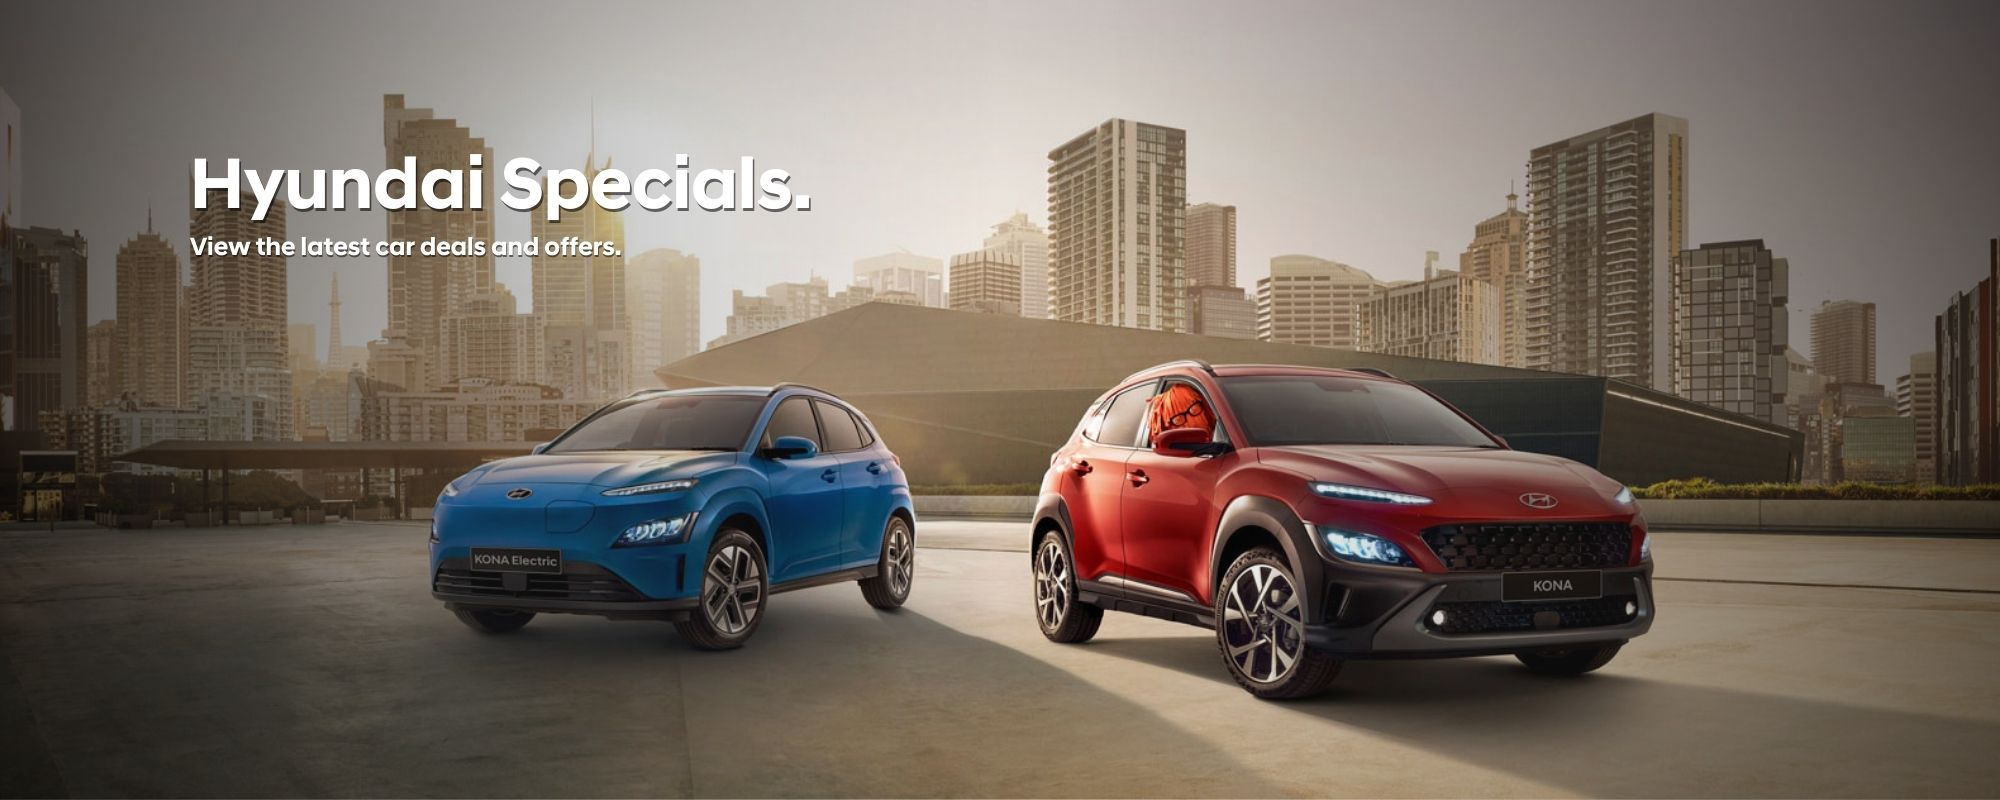 Hyundai Specials. View the latest car deals and offers.